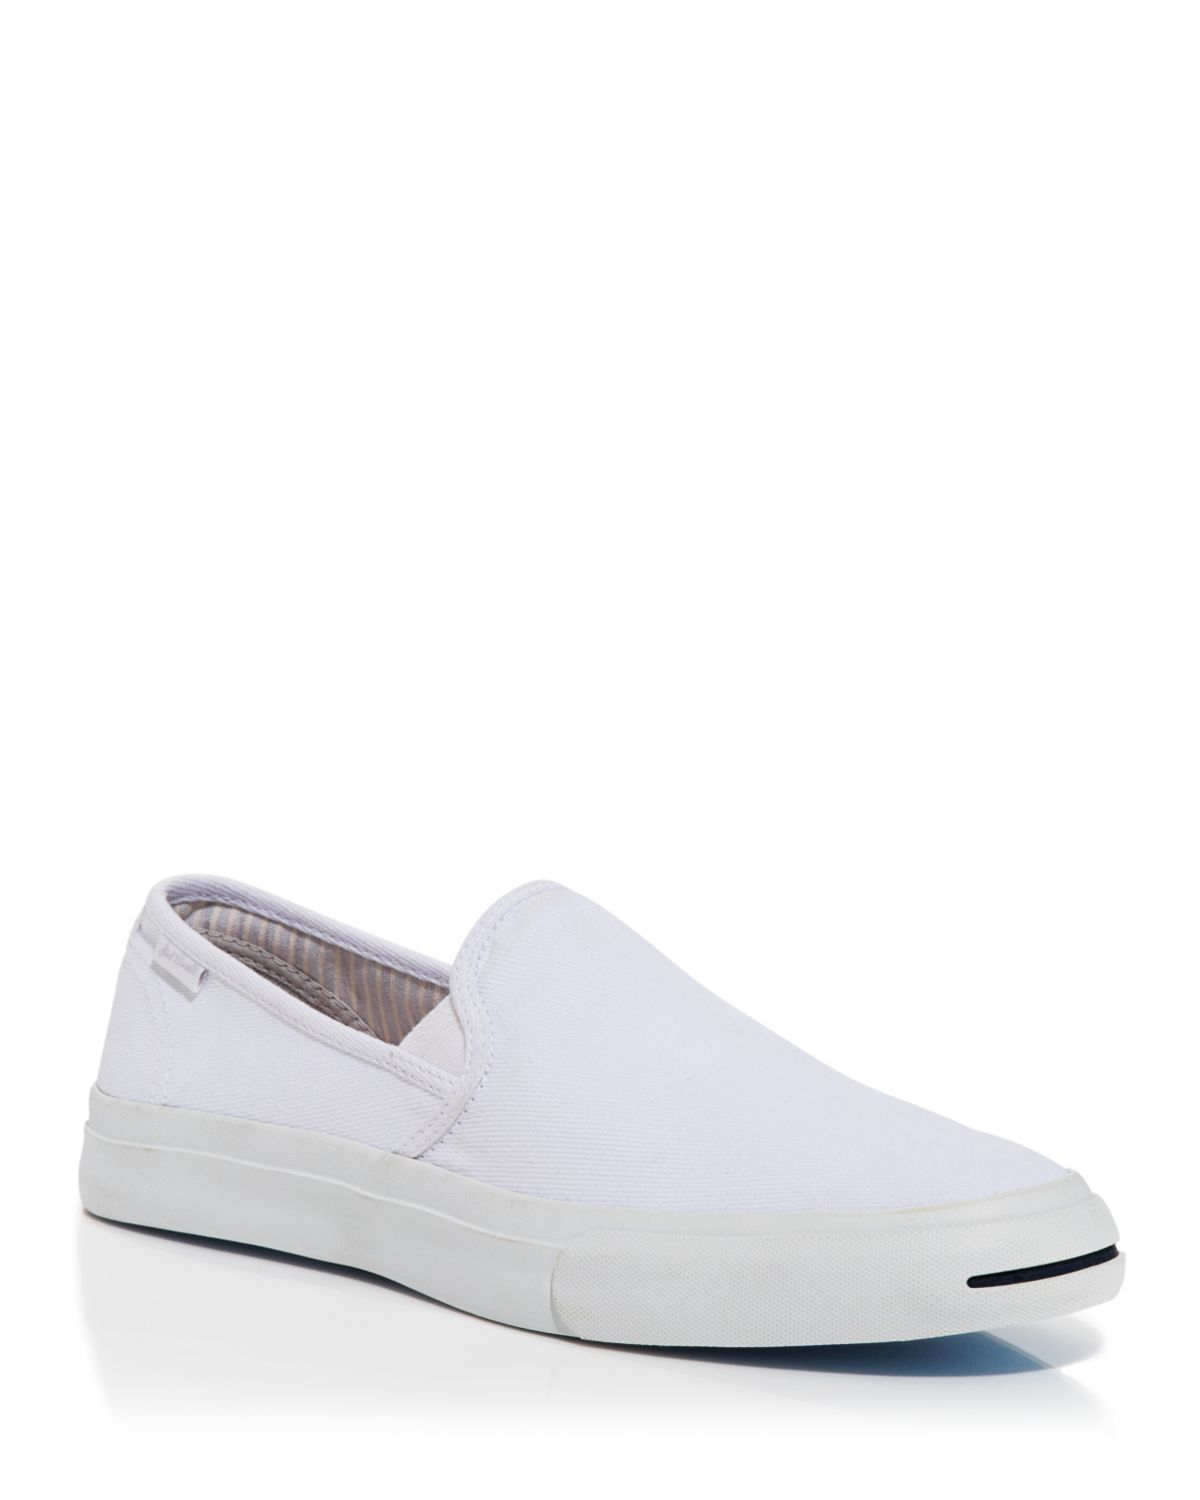 converse purcell slip on sneakers in white for lyst